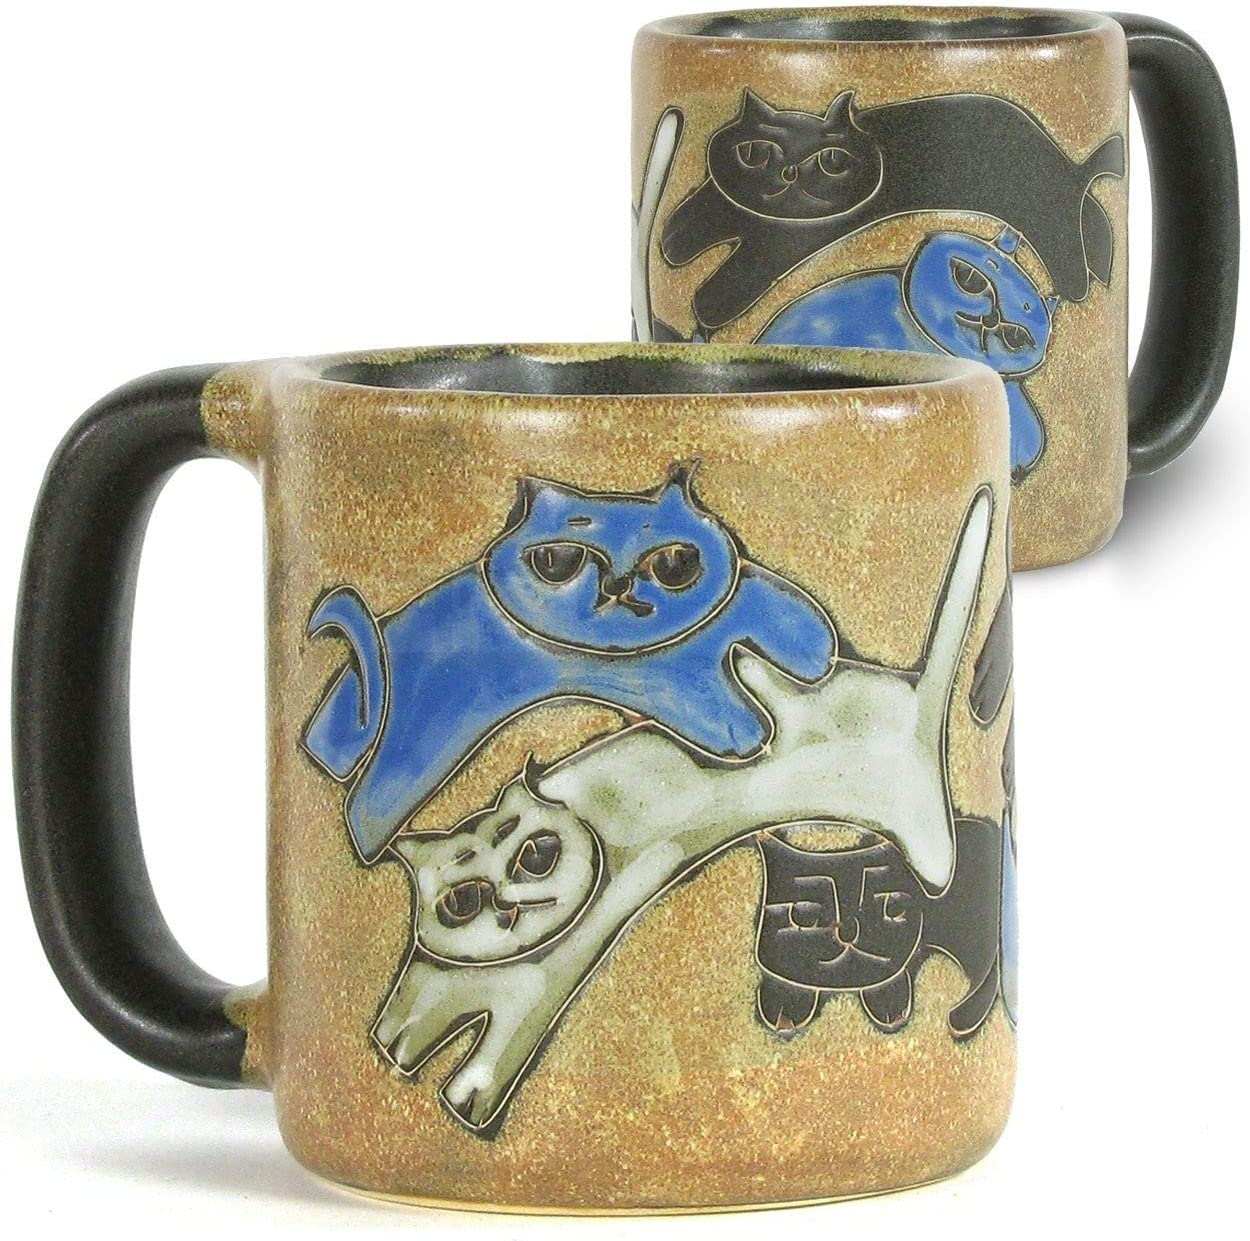 One (1) MARA STONEWARE COLLECTION - 16 Oz Coffee Or Tea Cup Collectible Dinner Mug - Kitten Kitty Cat Design